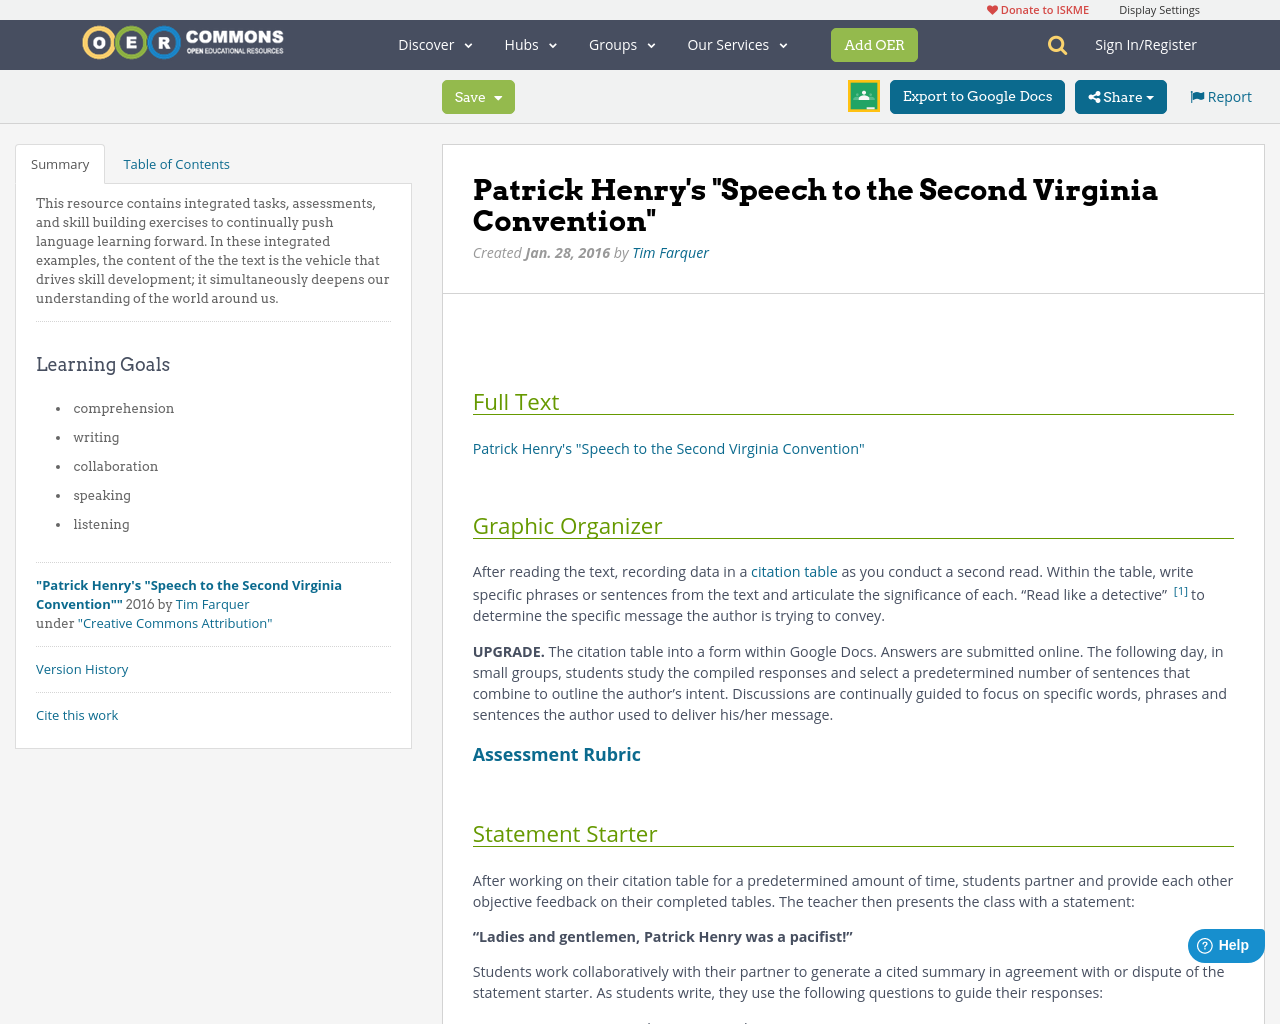 patrick henry s speech to the second virginia convention oer patrick henry s speech to the second virginia convention oer commons